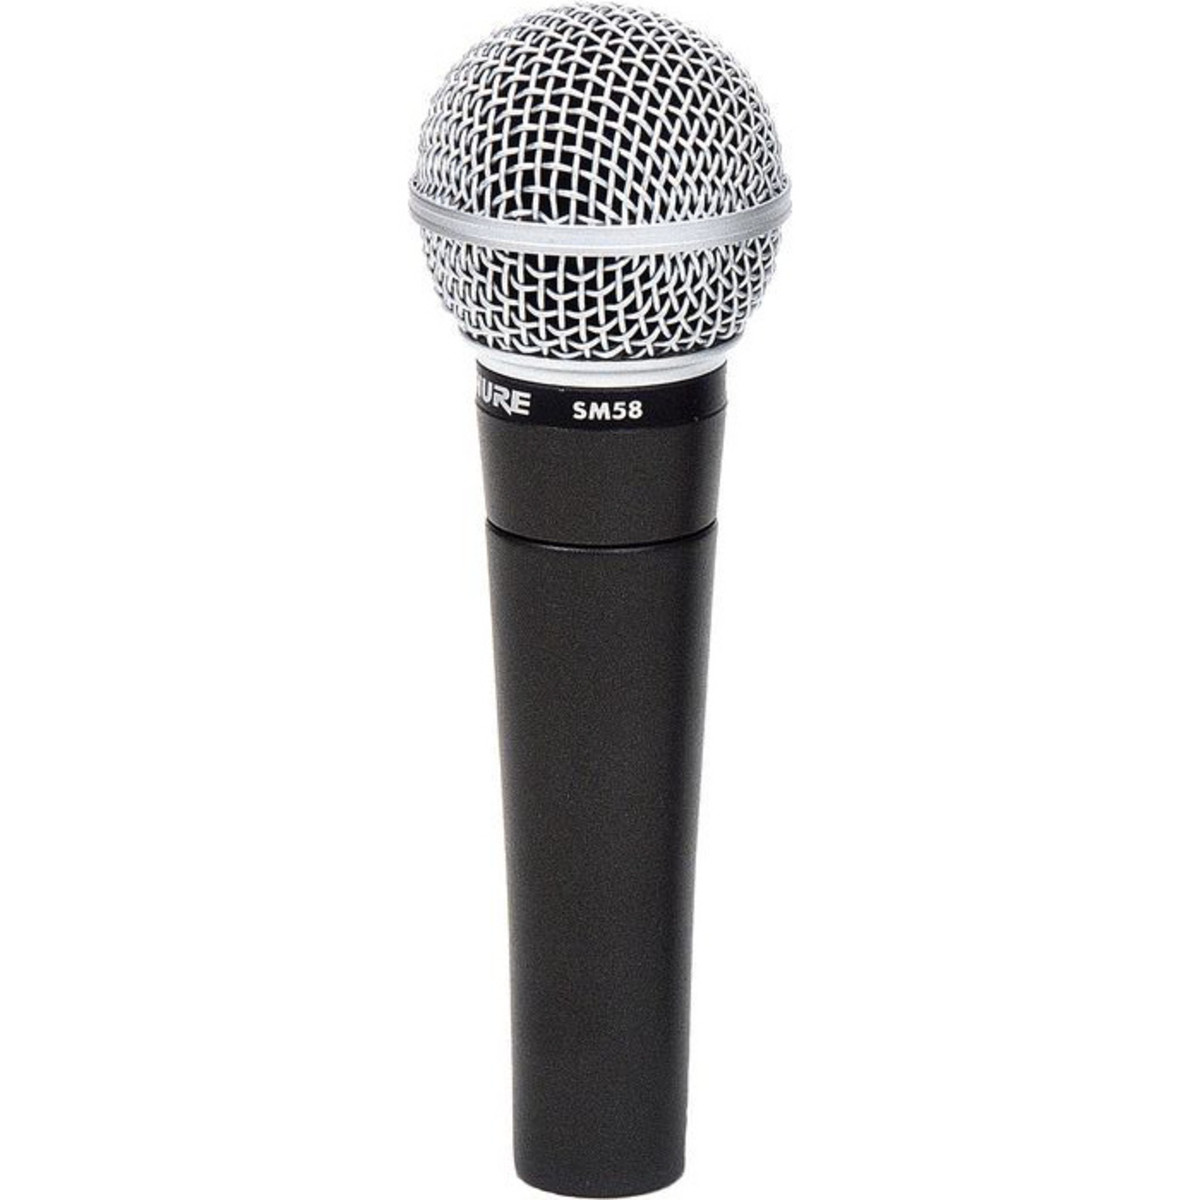 shure sm58 dynamic cardioid vocal microphone nearly new at gear4music. Black Bedroom Furniture Sets. Home Design Ideas